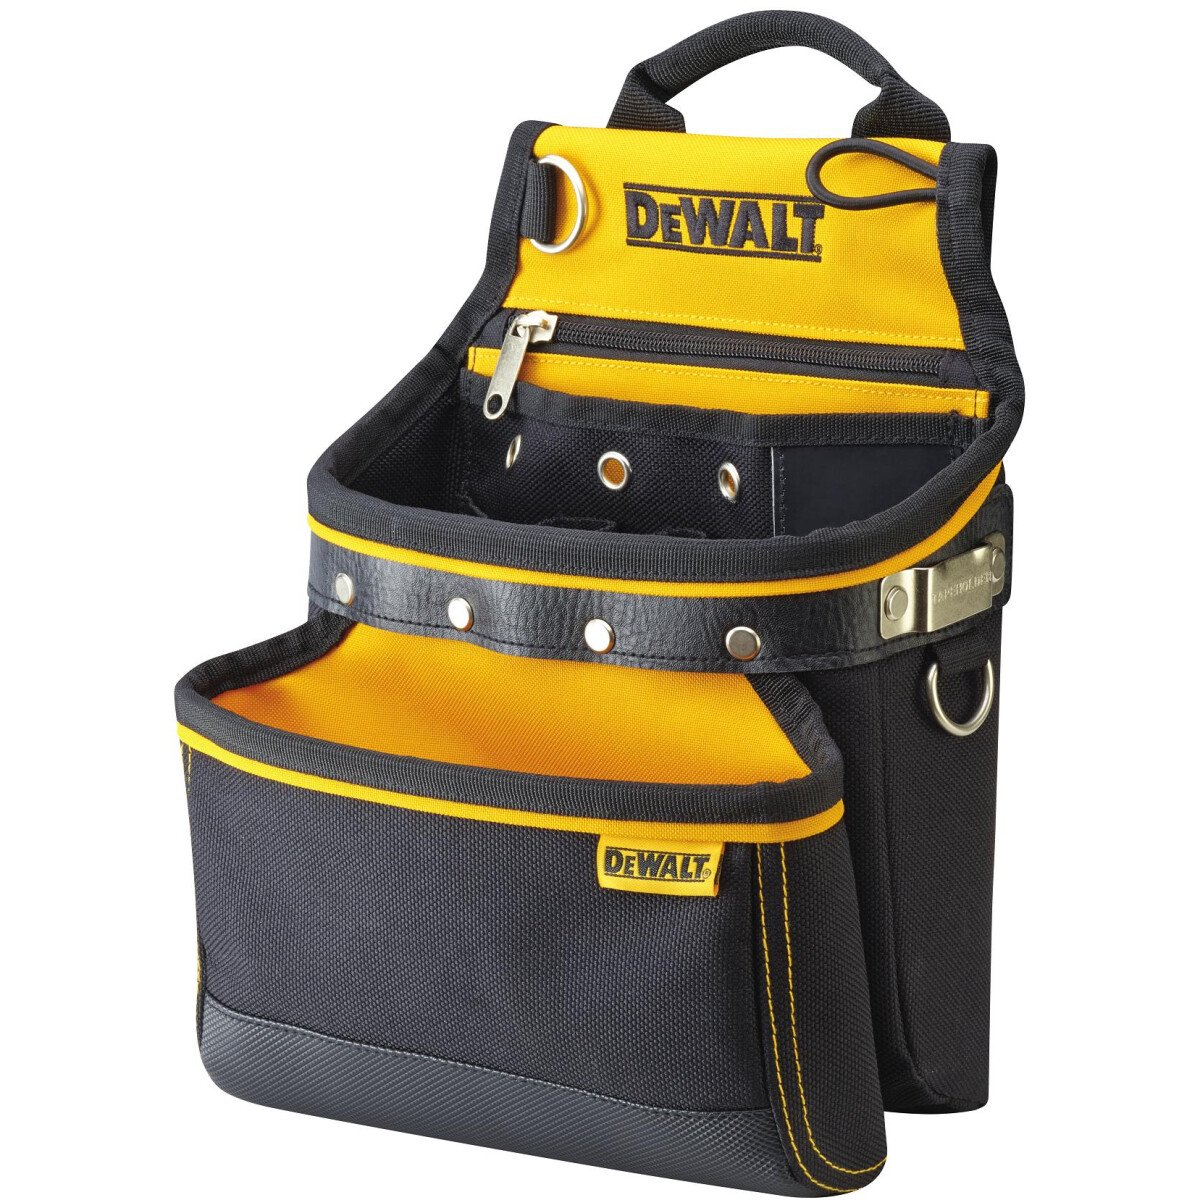 DeWalt DWST1-75551 Multi Purpose Tool and Nail Pouch